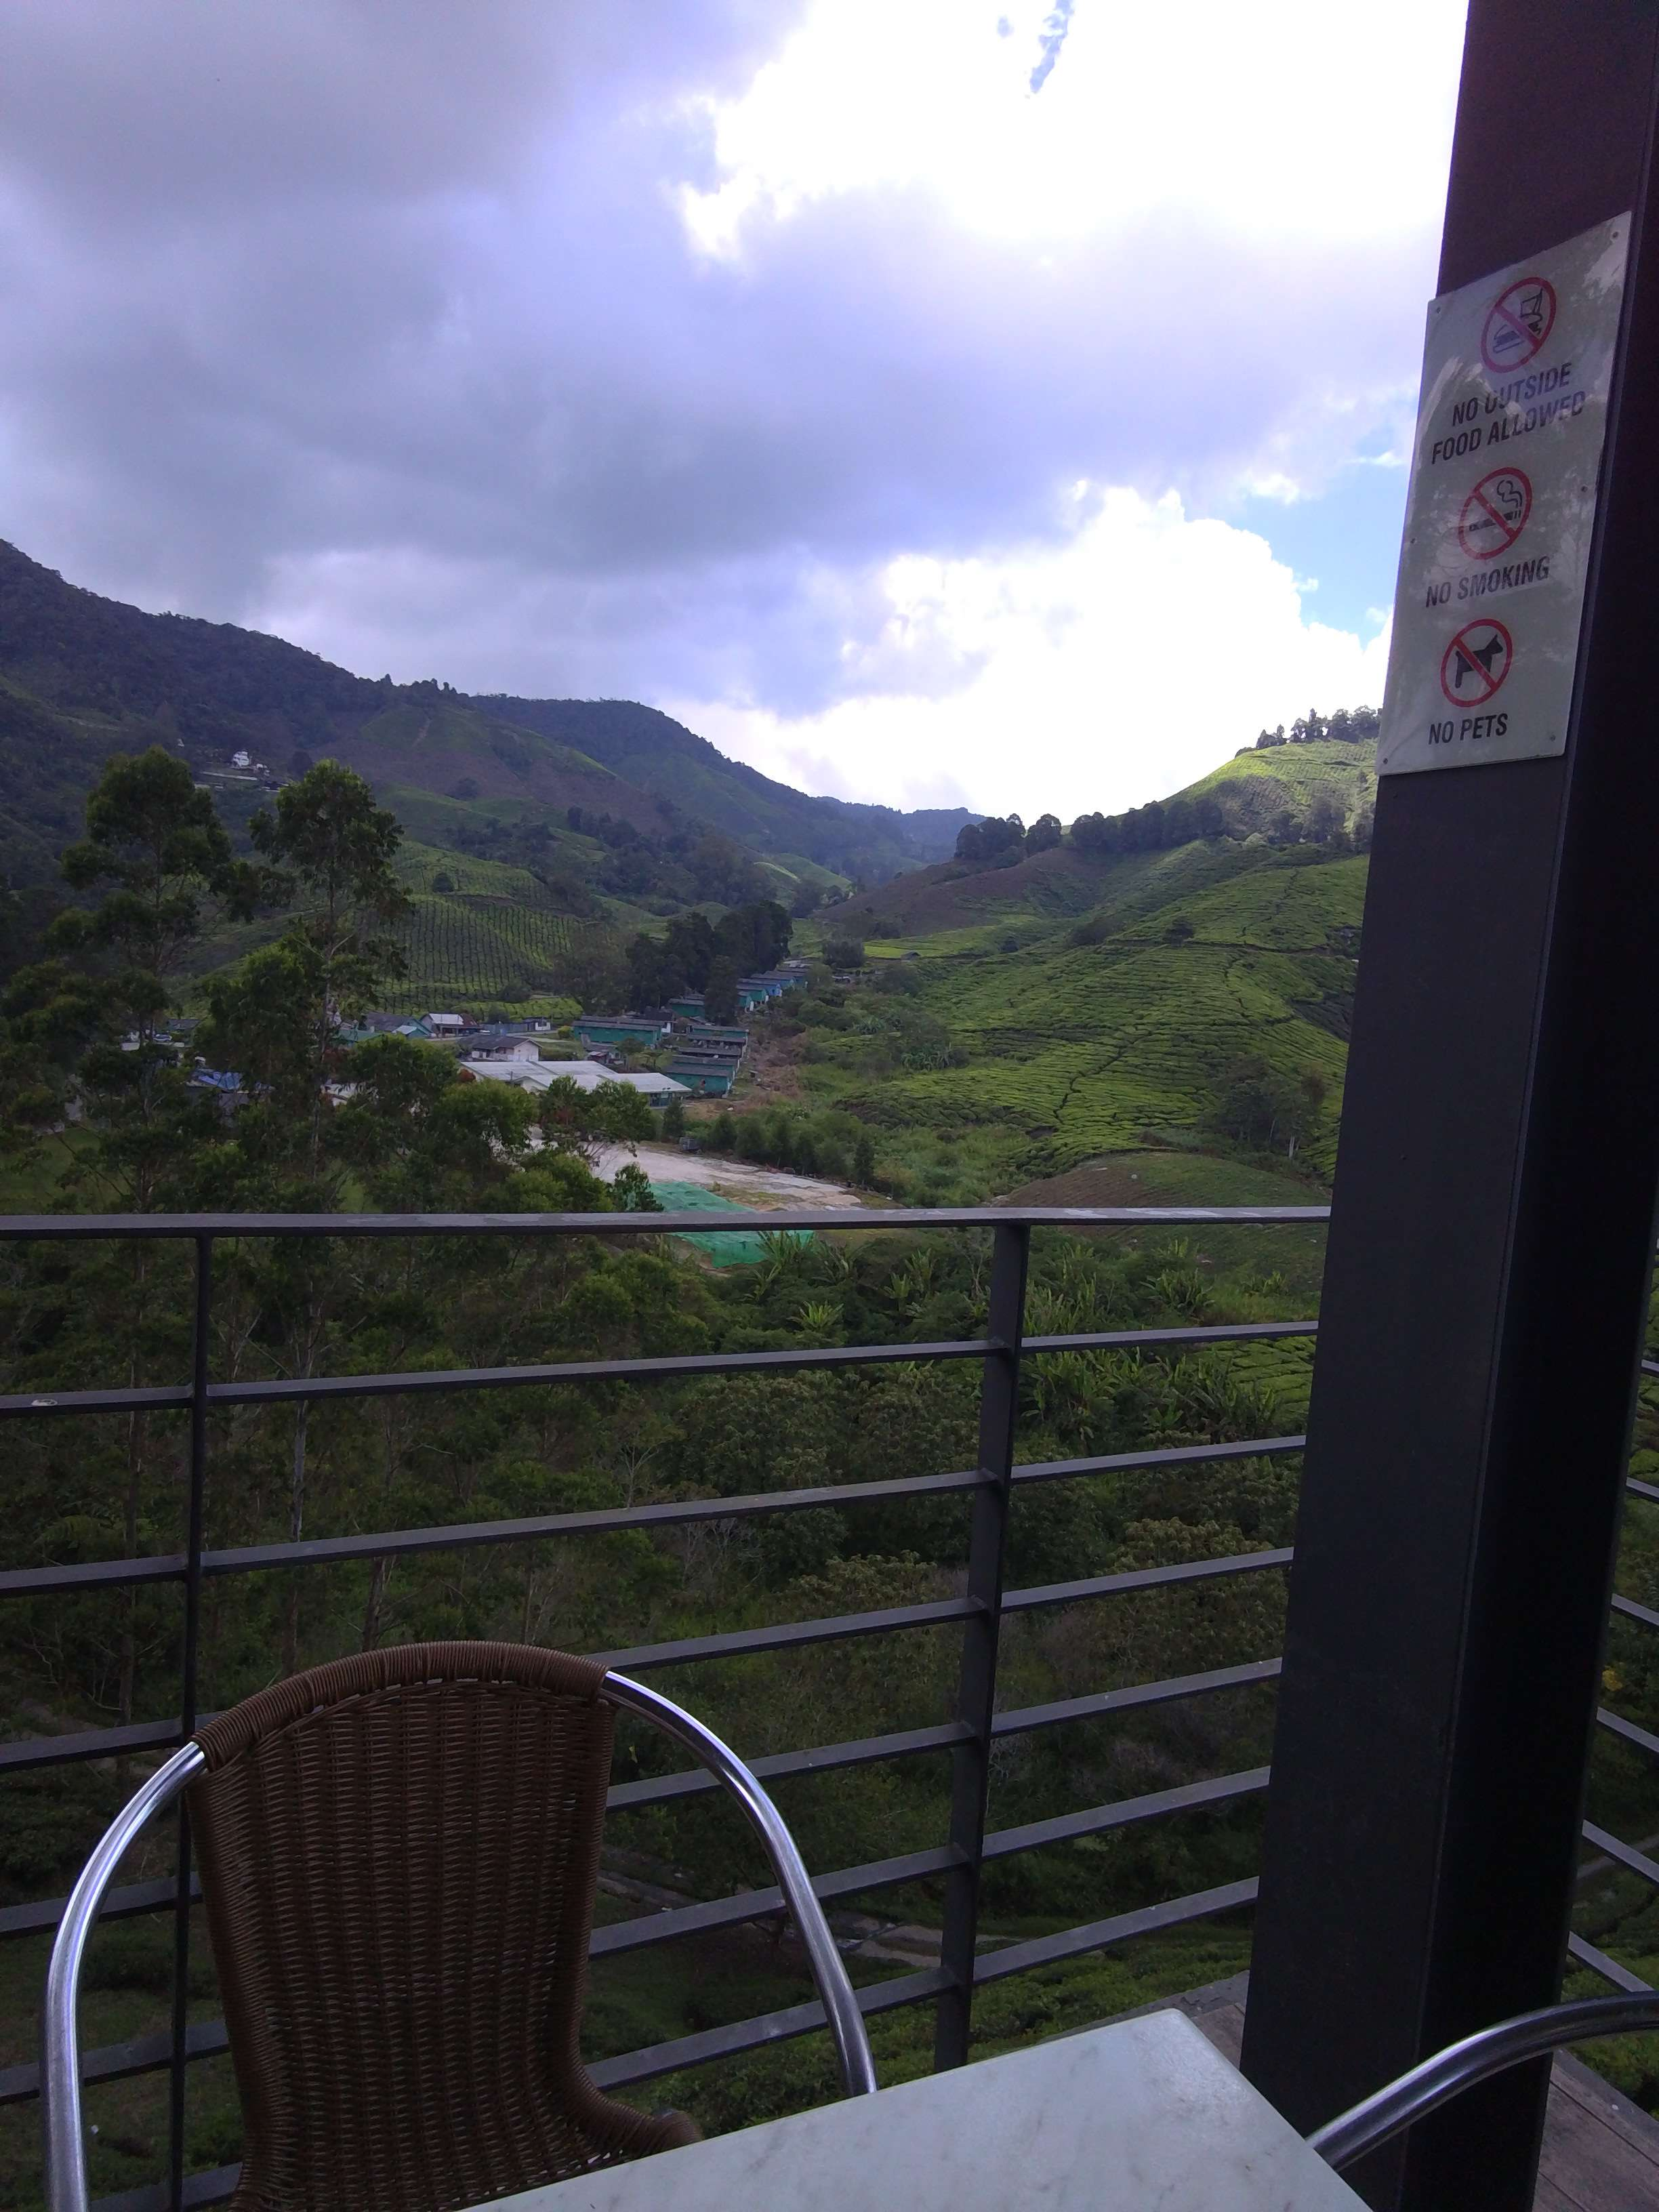 View down from the tea plantation. I recommend trying to get one of the seats in the front!